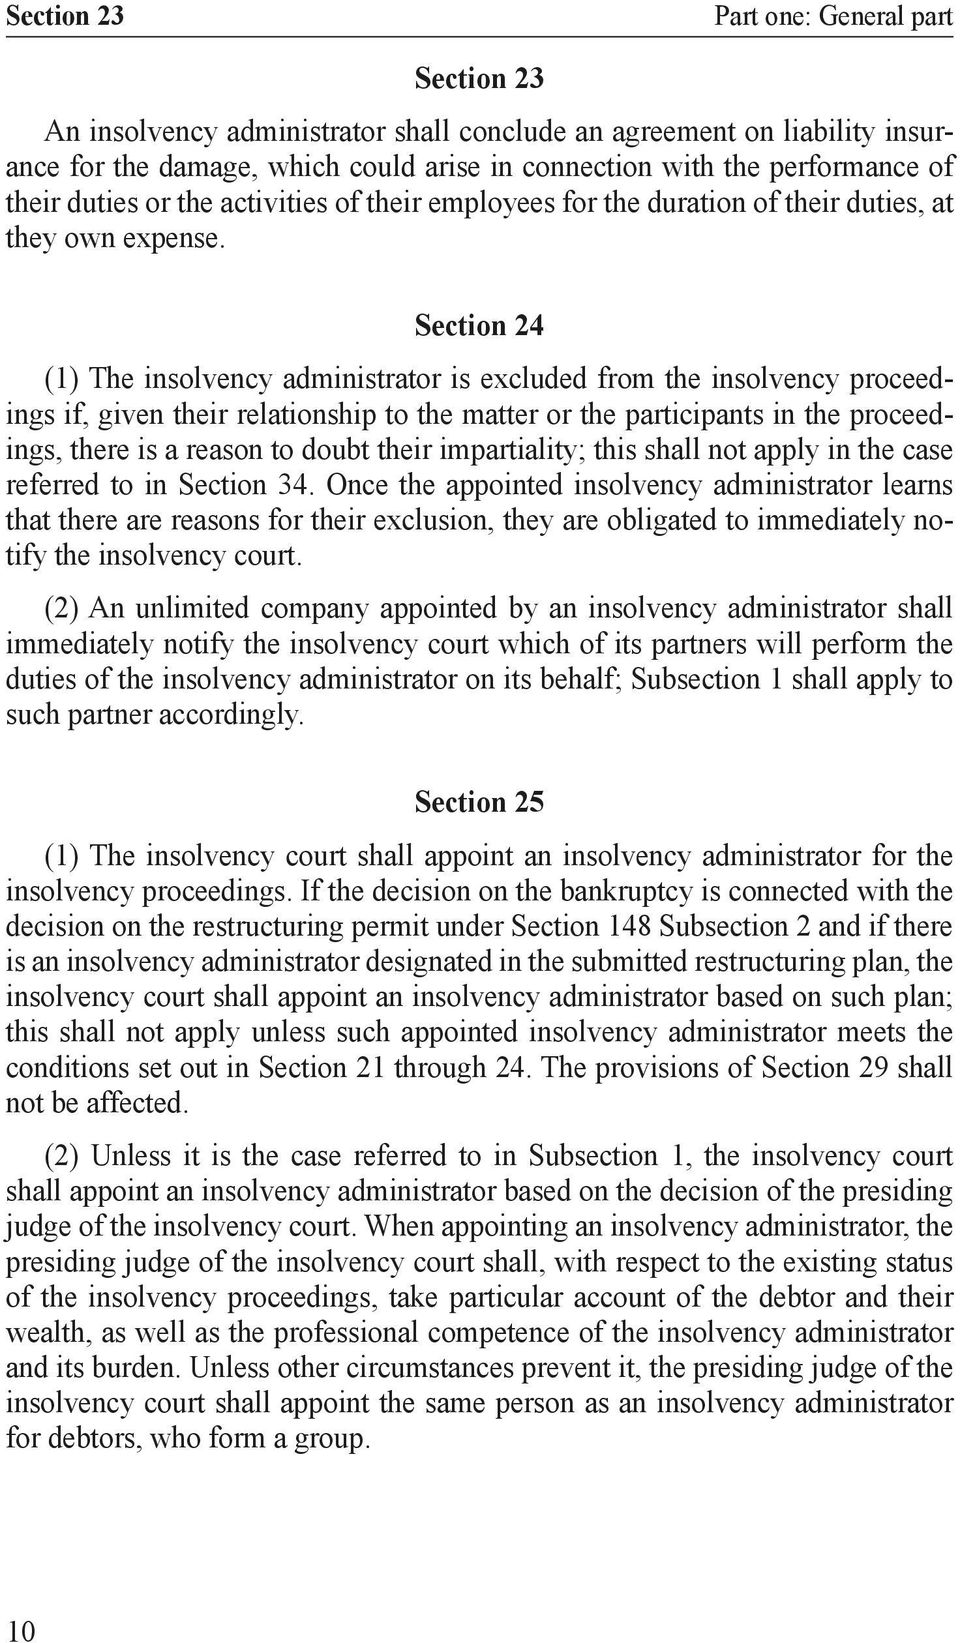 Section 24 (1) The insolvency administrator is excluded from the insolvency proceedings if, given their relationship to the matter or the participants in the proceedings, there is a reason to doubt